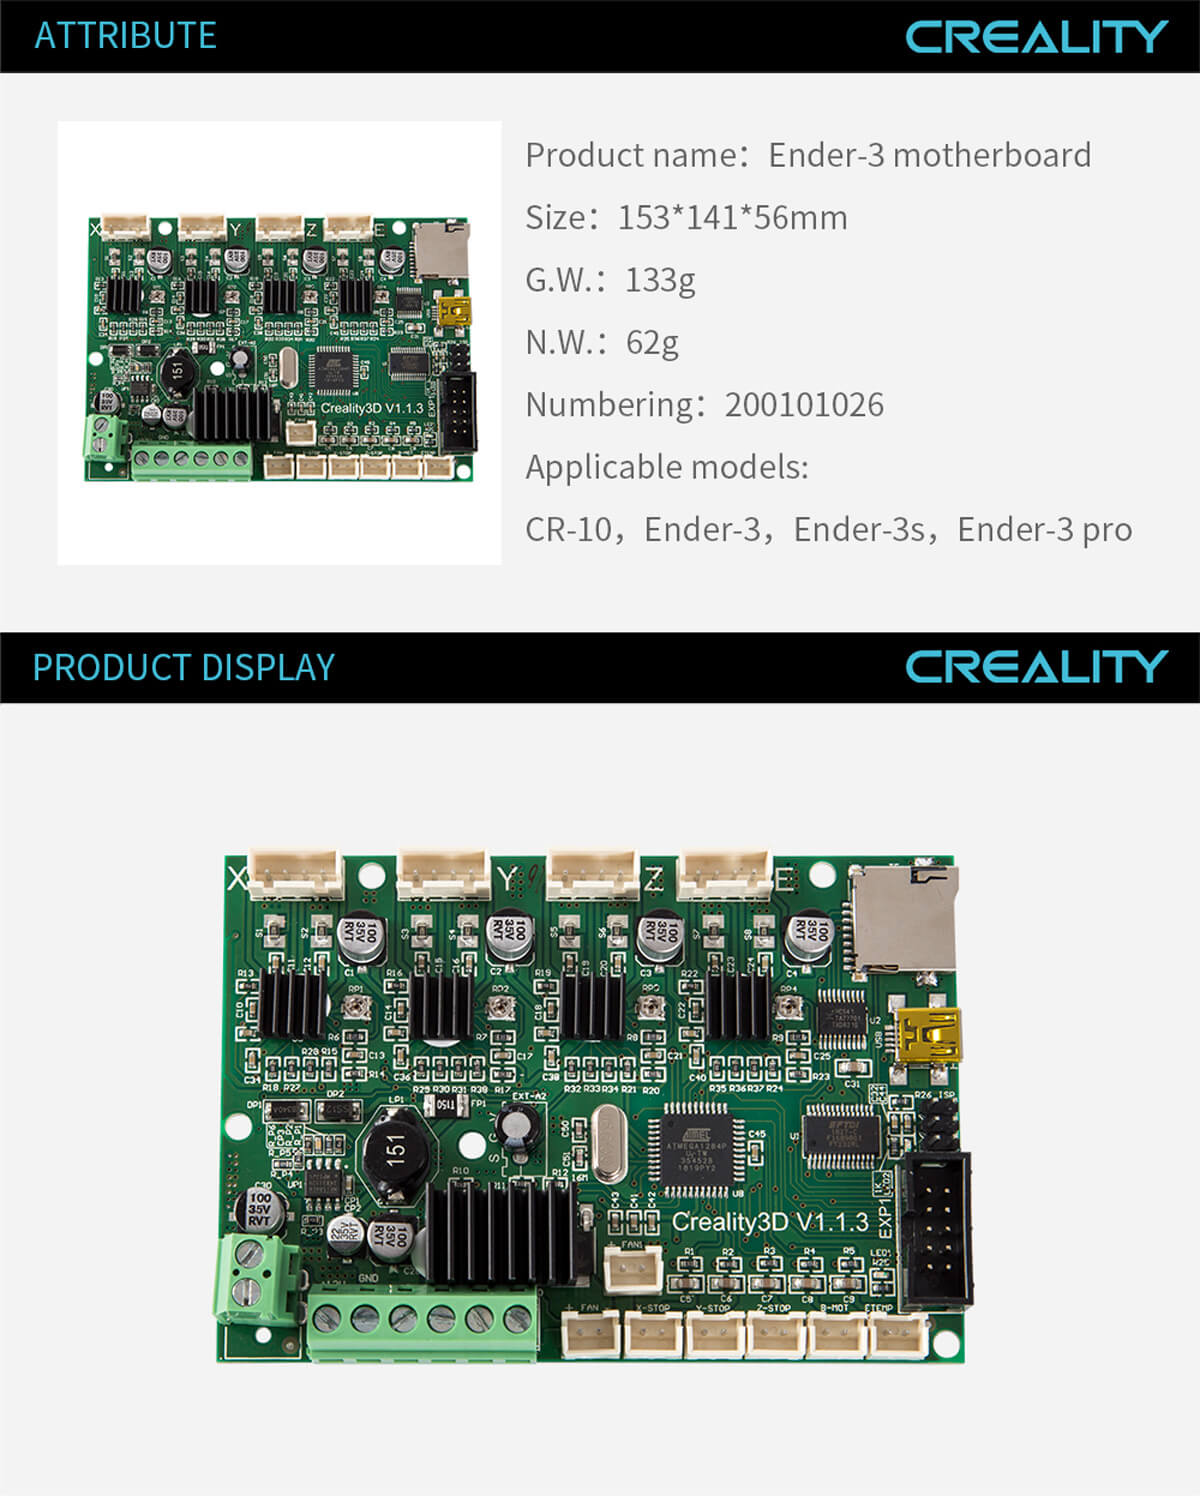 creality-3d-printer-Ender-3-Motherboard-11